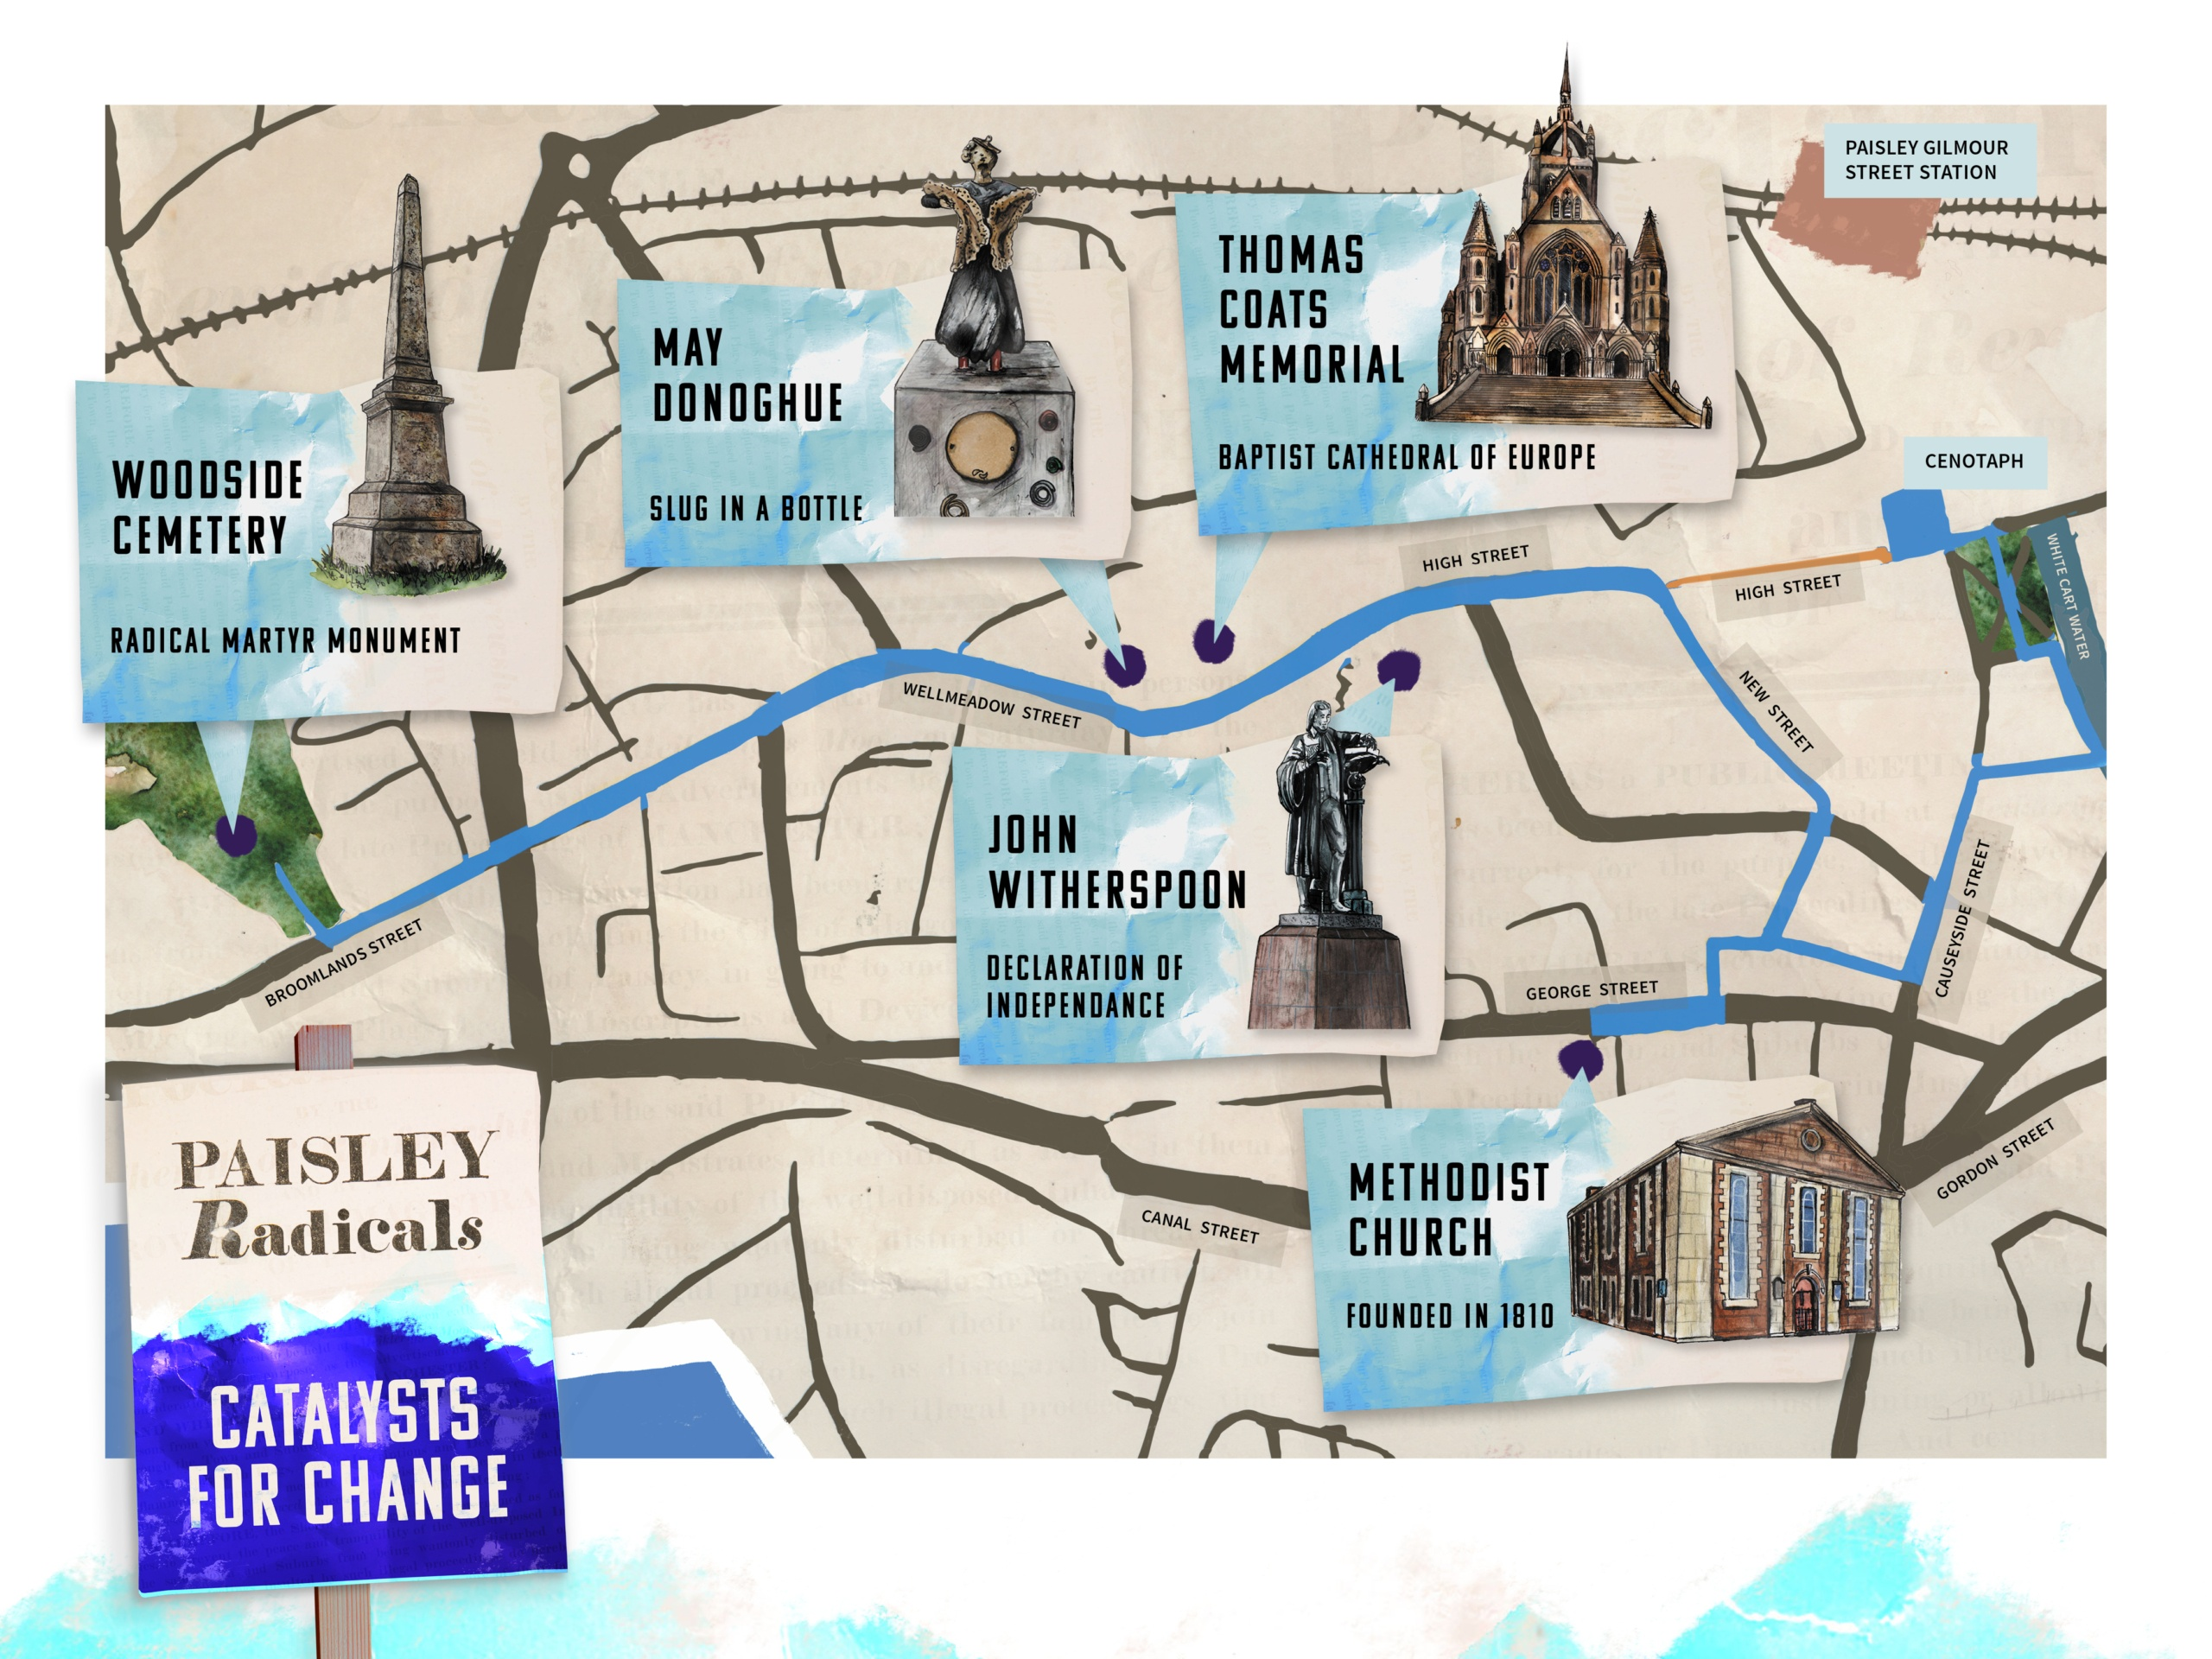 Paisley Radicals Catalysts for Change Map - Illustrated by Josef McFadden